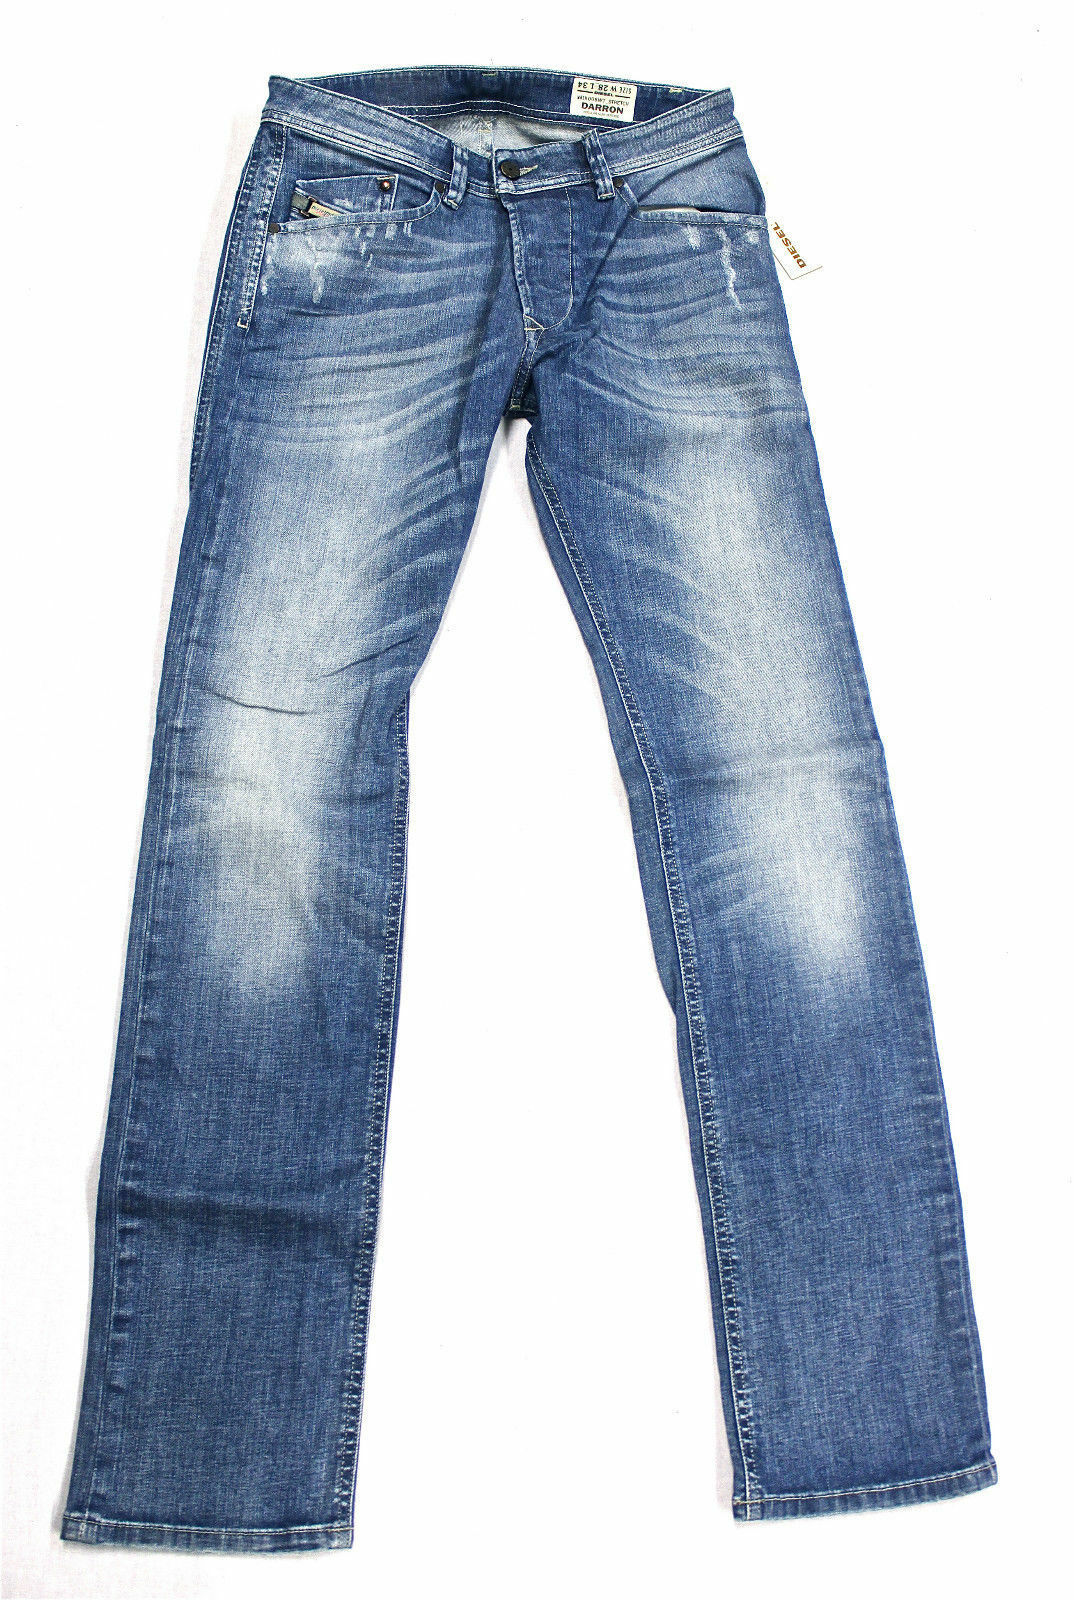 BRAND NEW DIESEL DARRON 8W7 JEANS 28X34 008W7 REGULAR SLIM FIT TAPErot LEG